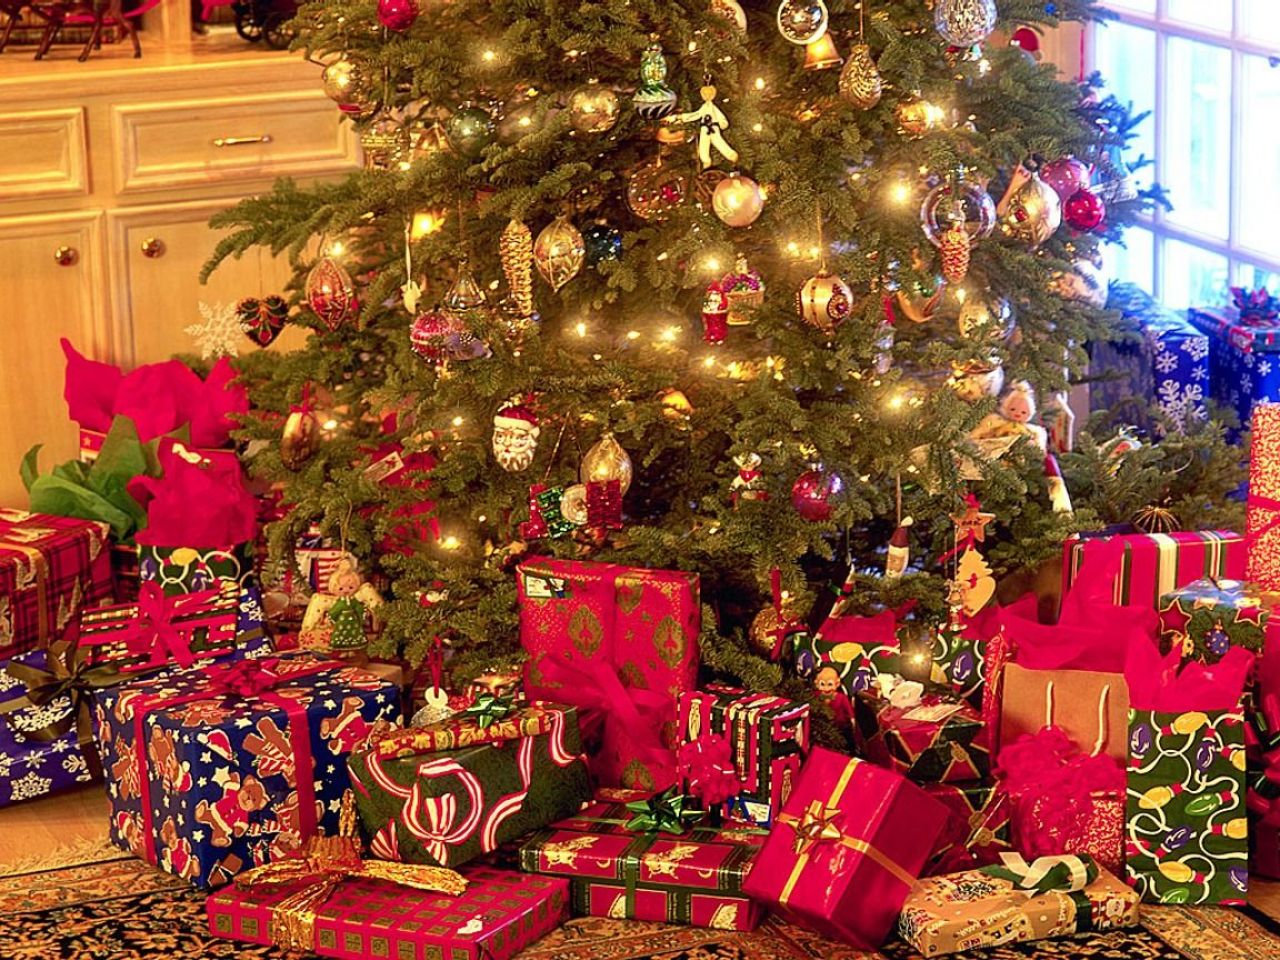 Christmas Tree With Presents 5441ccfd29e8a Wlssd